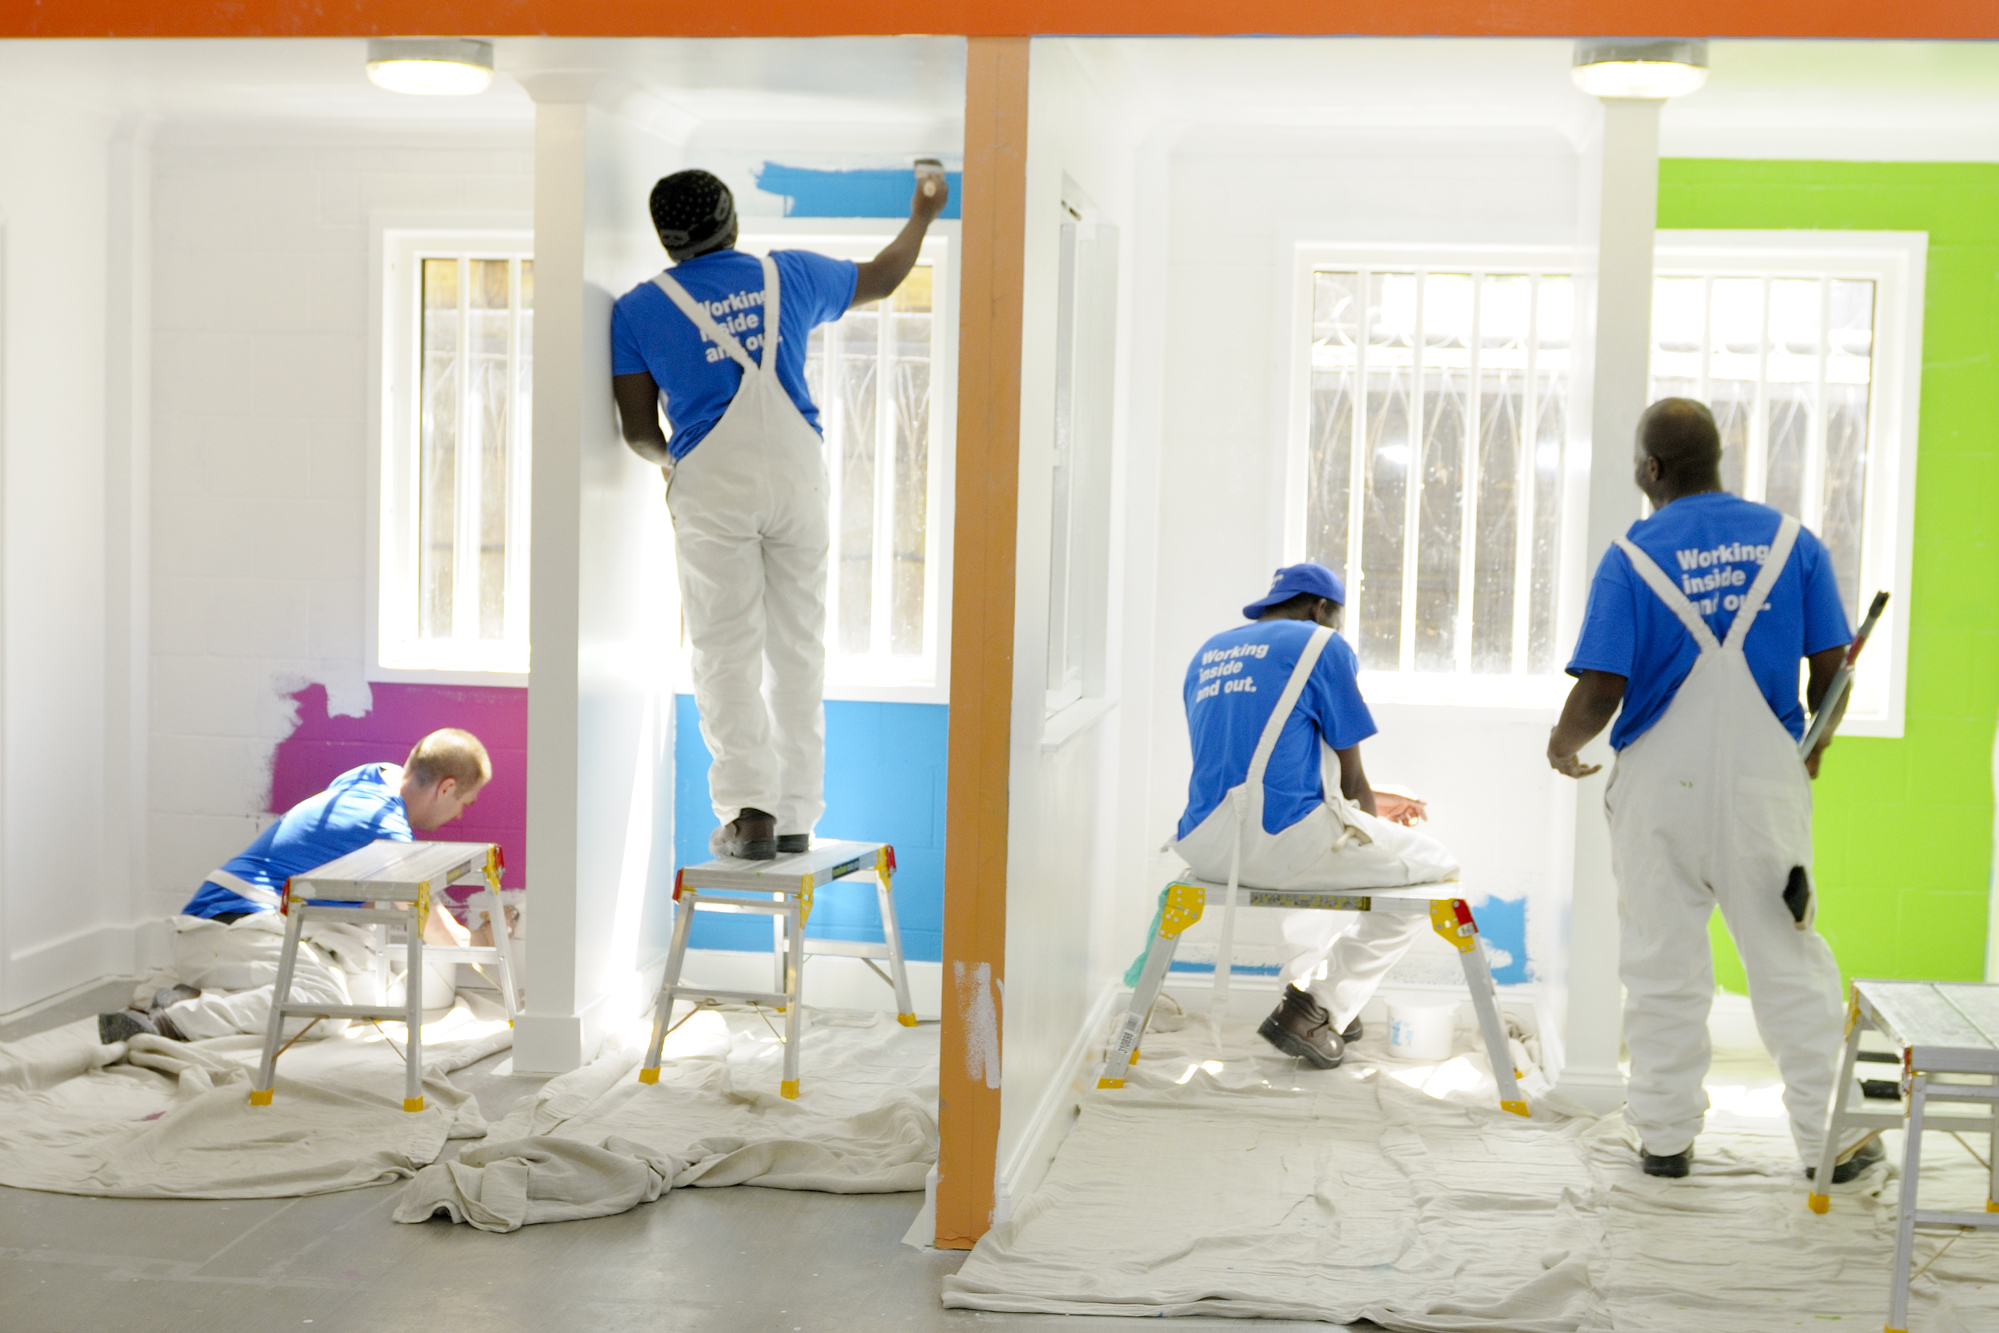 Men painting walls with colourful paint